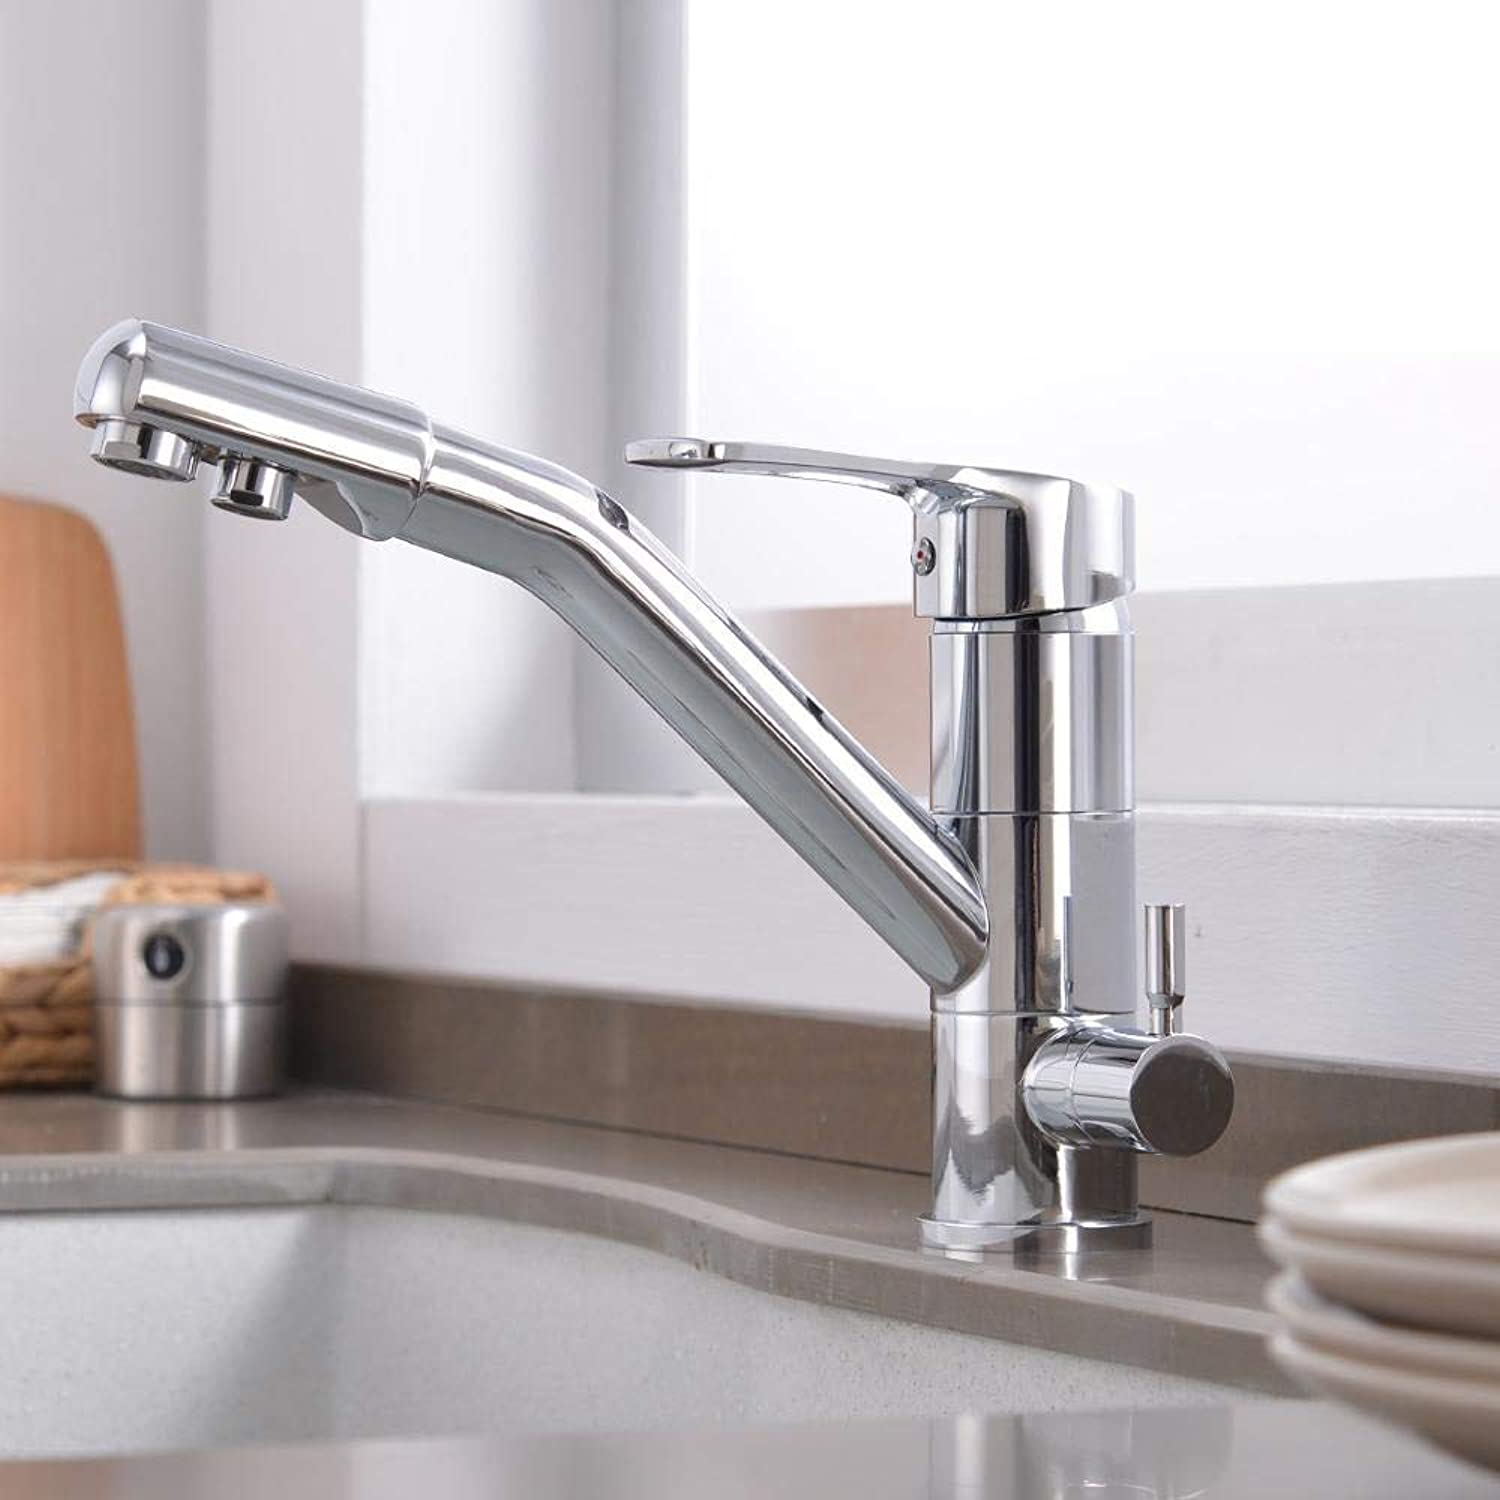 Brass Marble Coated Rotating Drinking Faucet, 3-way Water Filter Water Purifier Kitchen Faucet Chrome